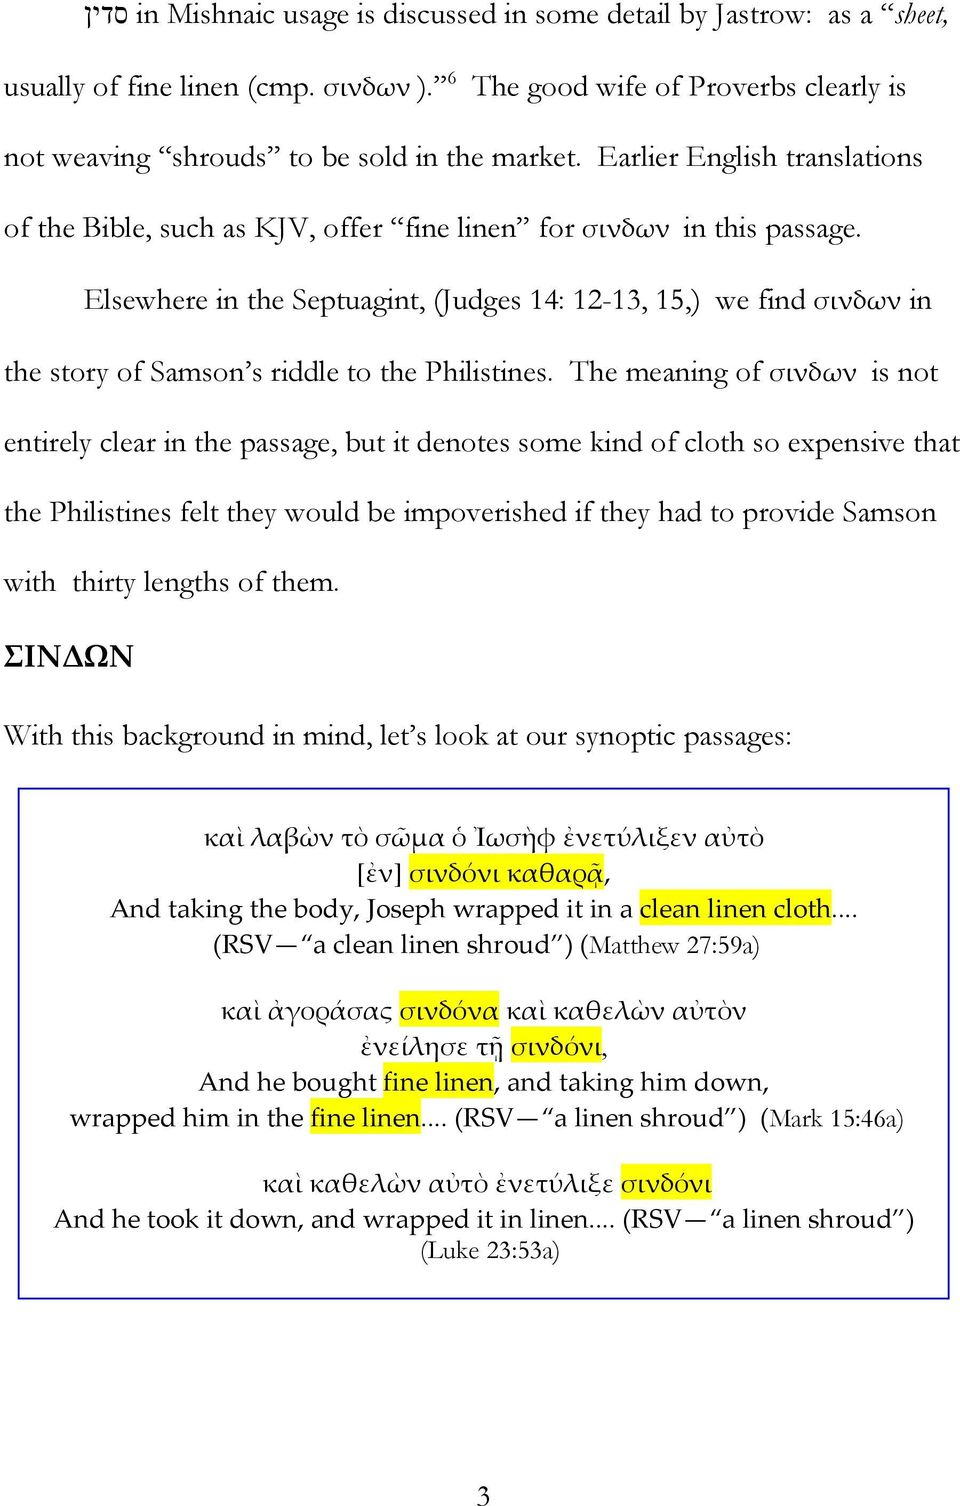 Elsewhere in the Septuagint, (Judges 14: 12-13, 15,) we find σινδων in the story of Samson s riddle to the Philistines.